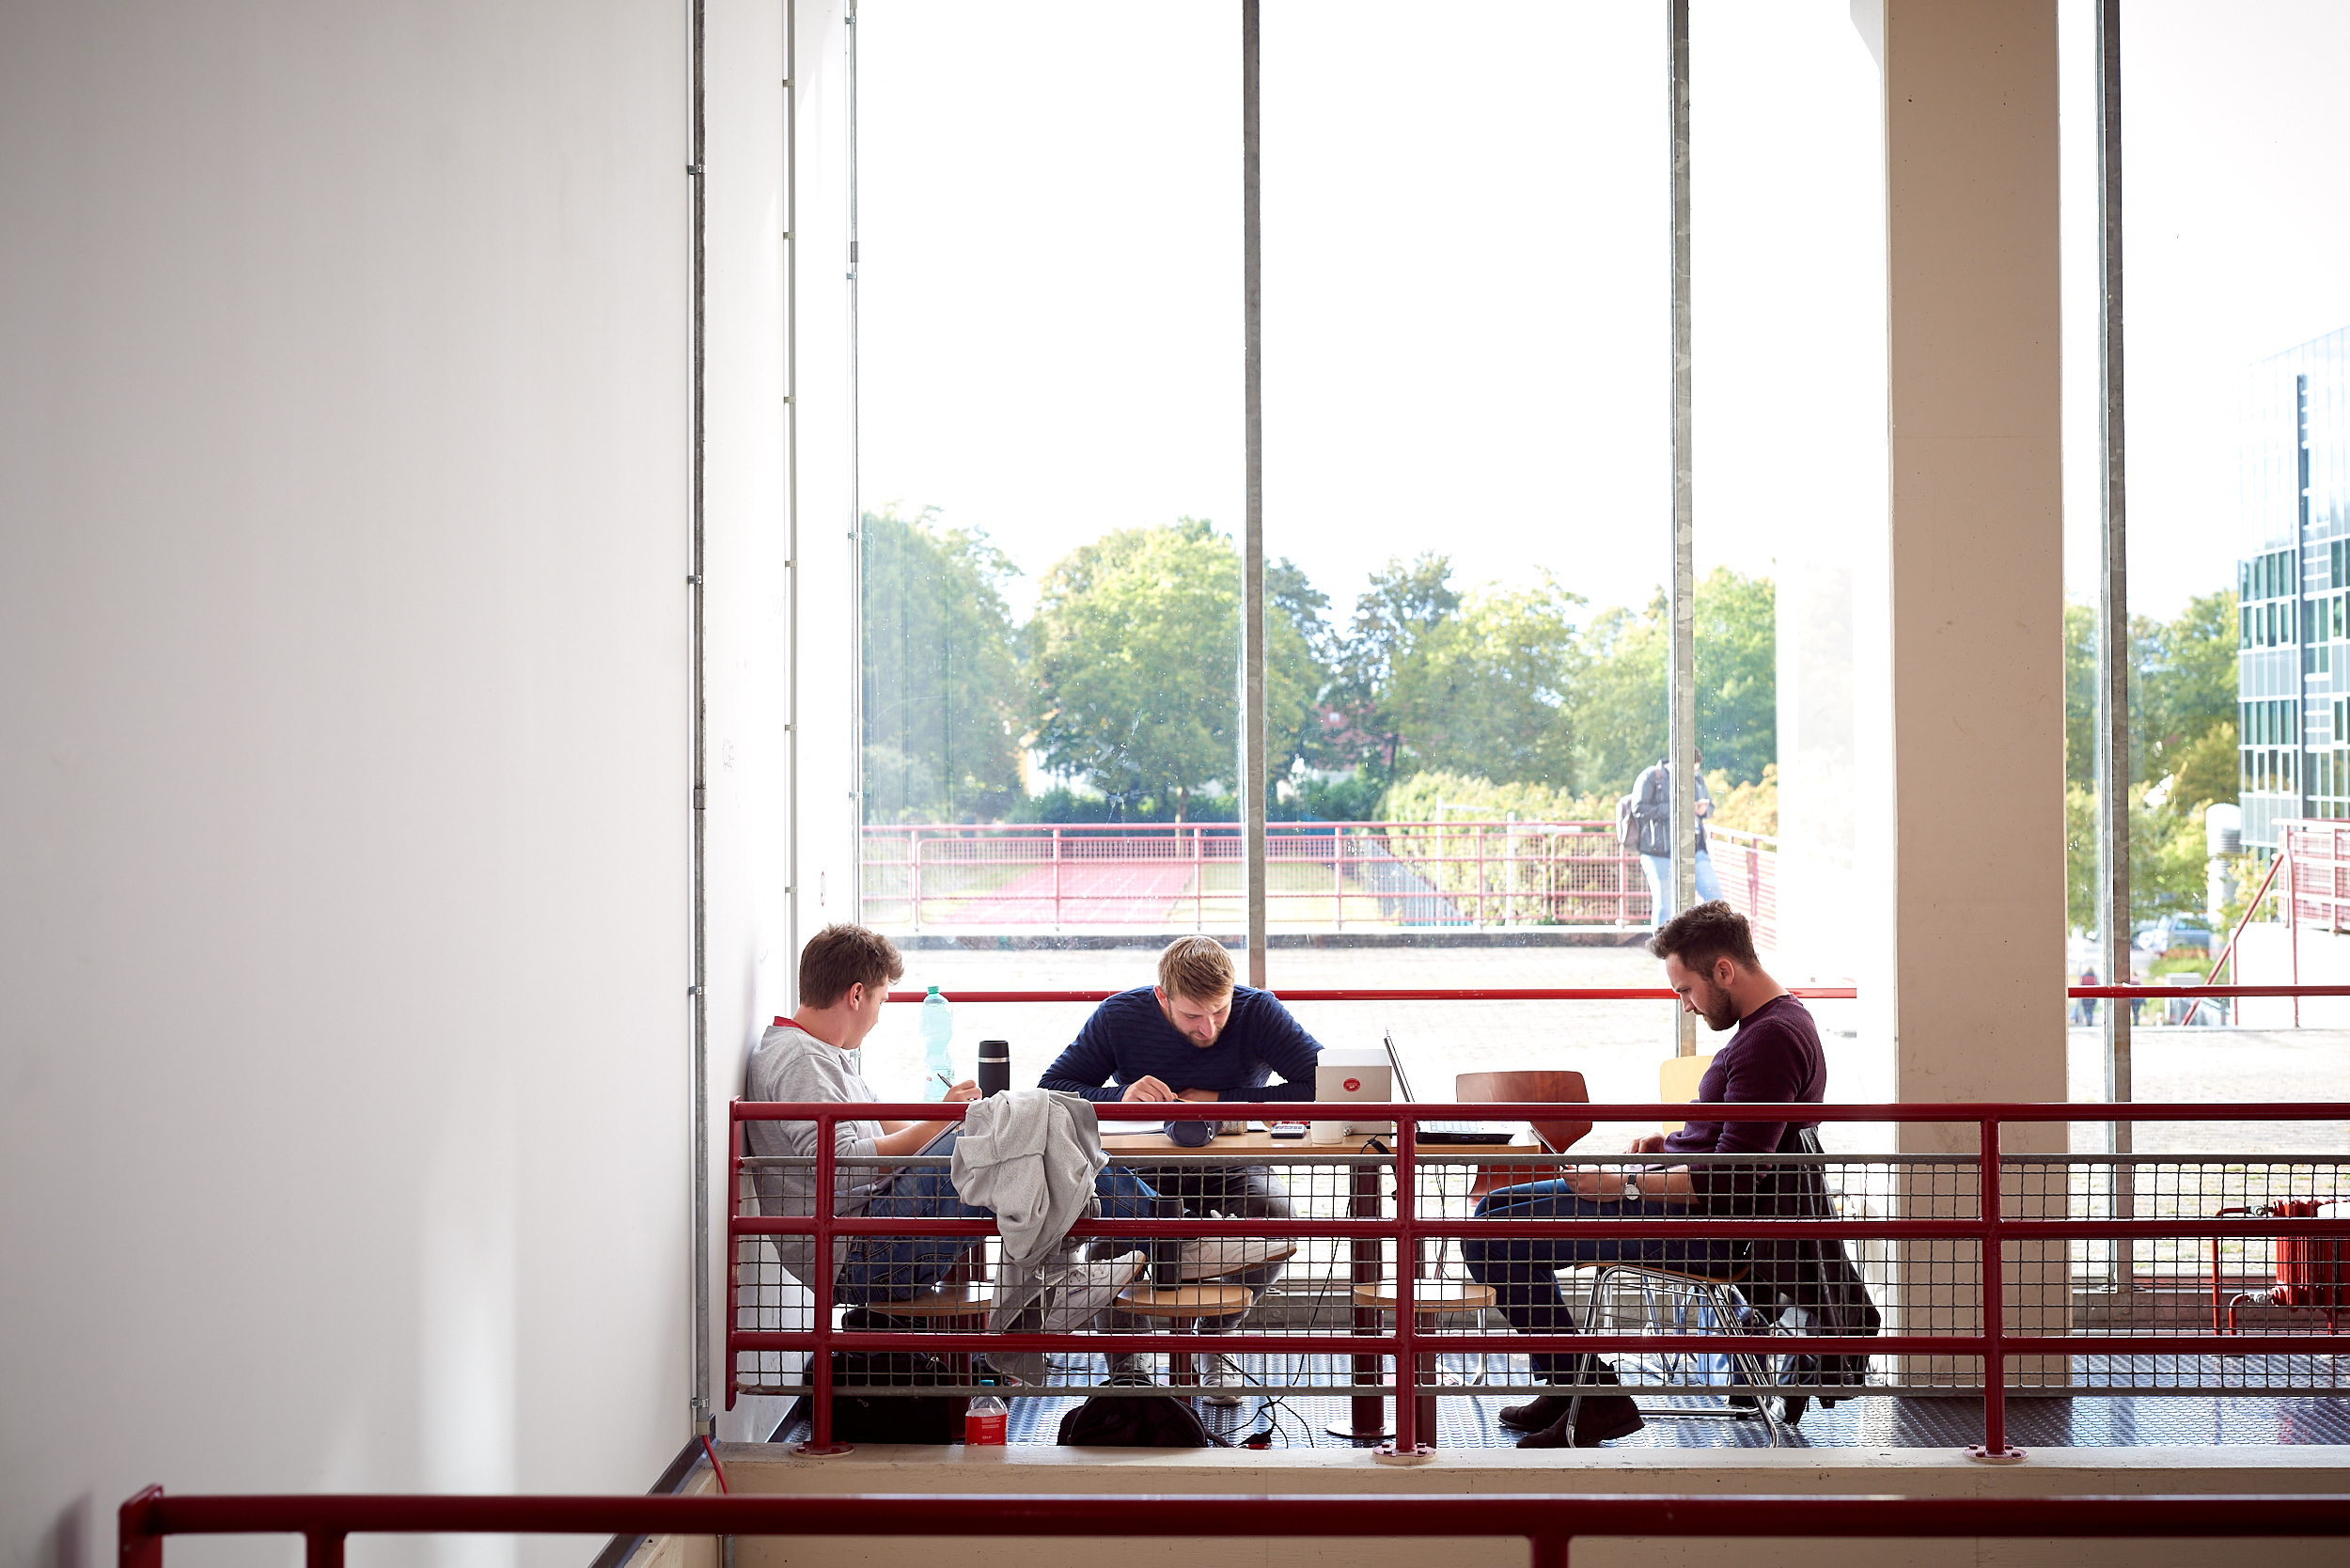 Students learning at one of the workplaces in the main building